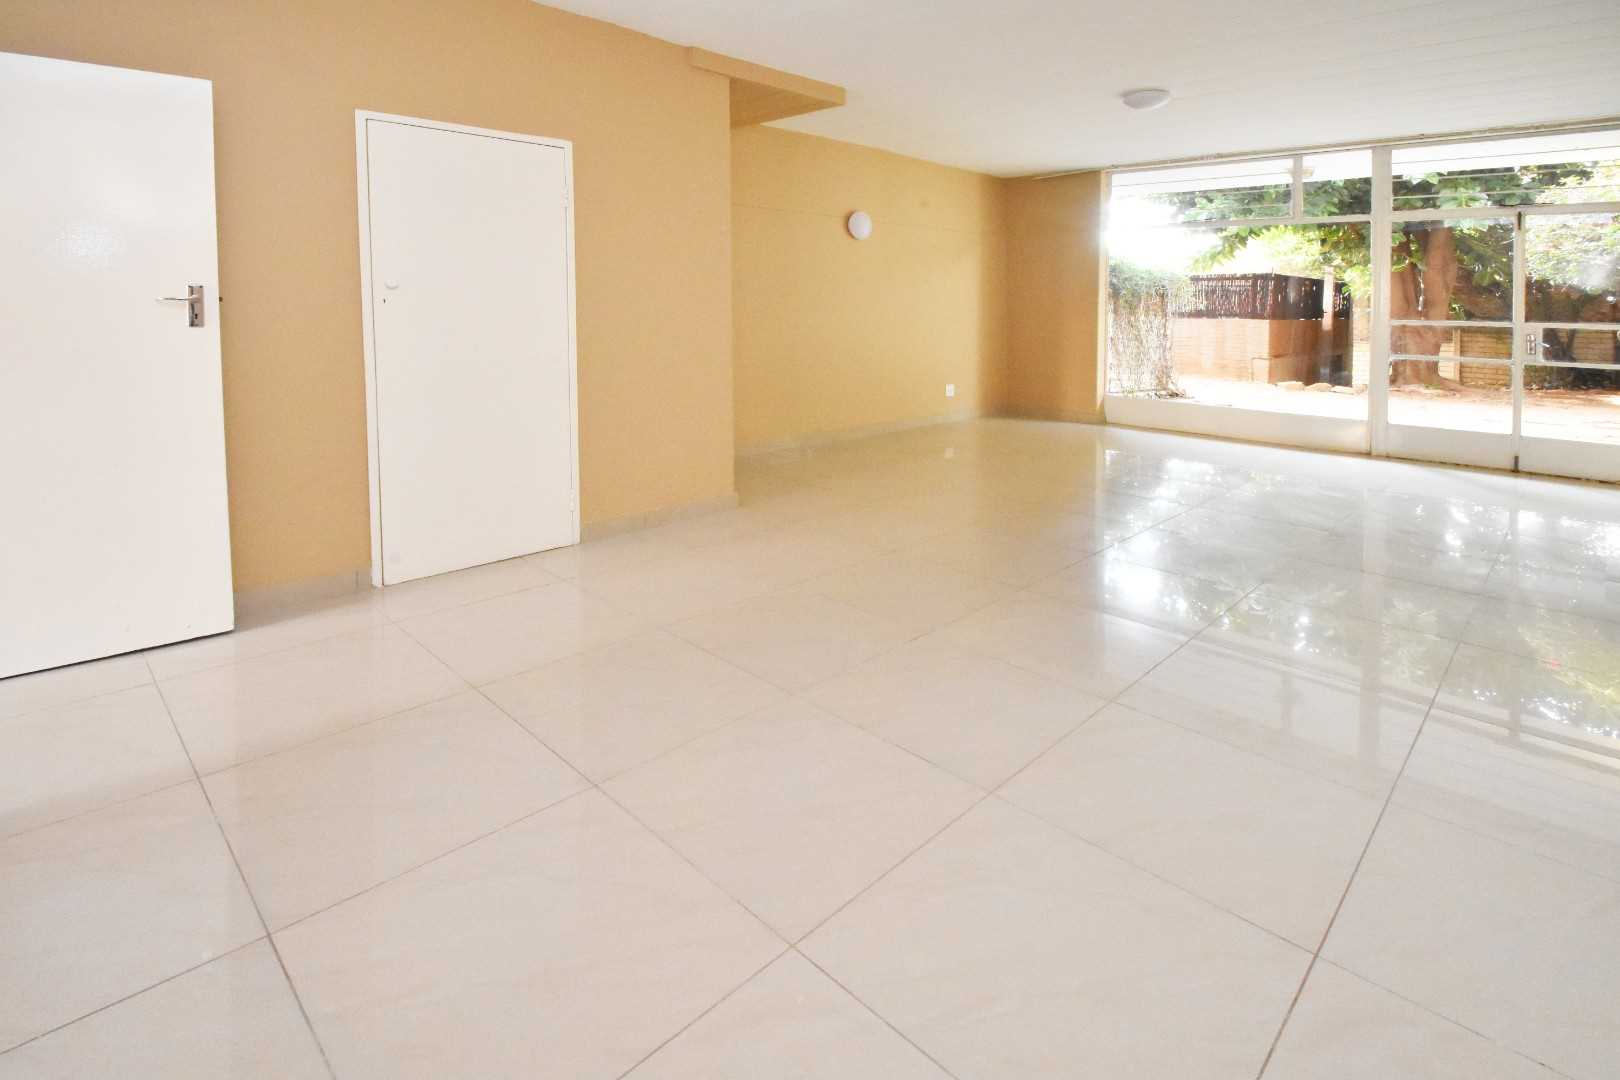 Open plan living area very spacious and will comfortably fit your dinning room, living area and tv area. Duplex units offer under staircase storage and some units have access to communal gardens